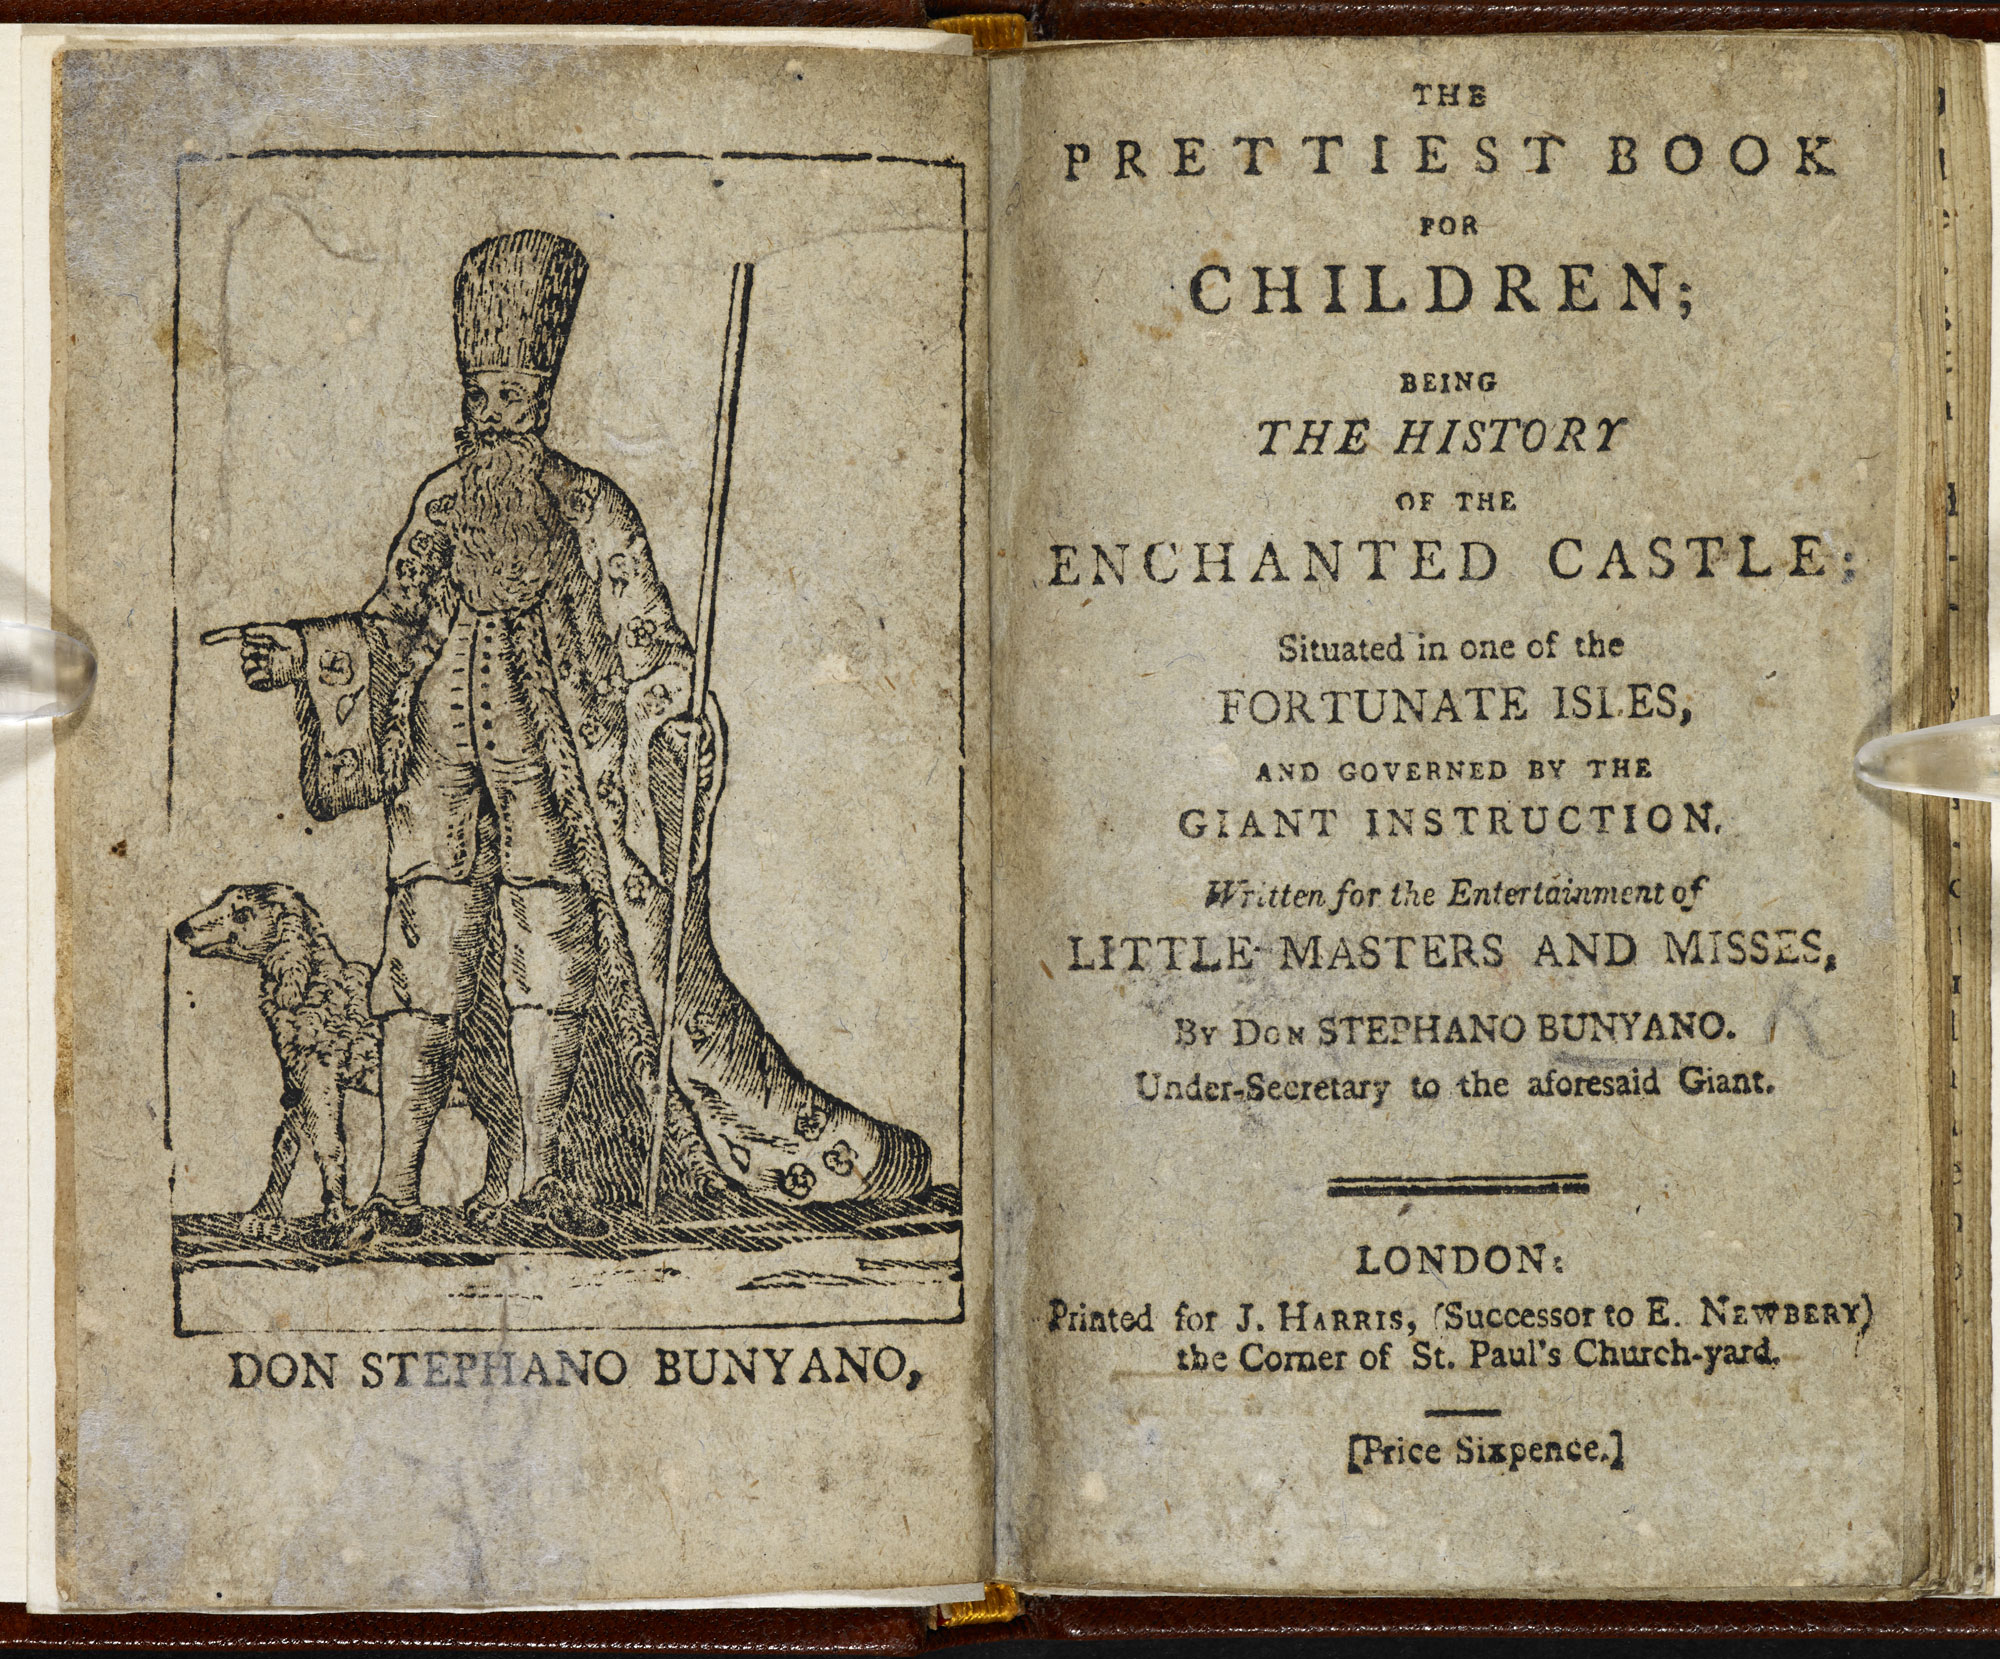 The Prettiest Book for Children [page: frontispiece and title page]